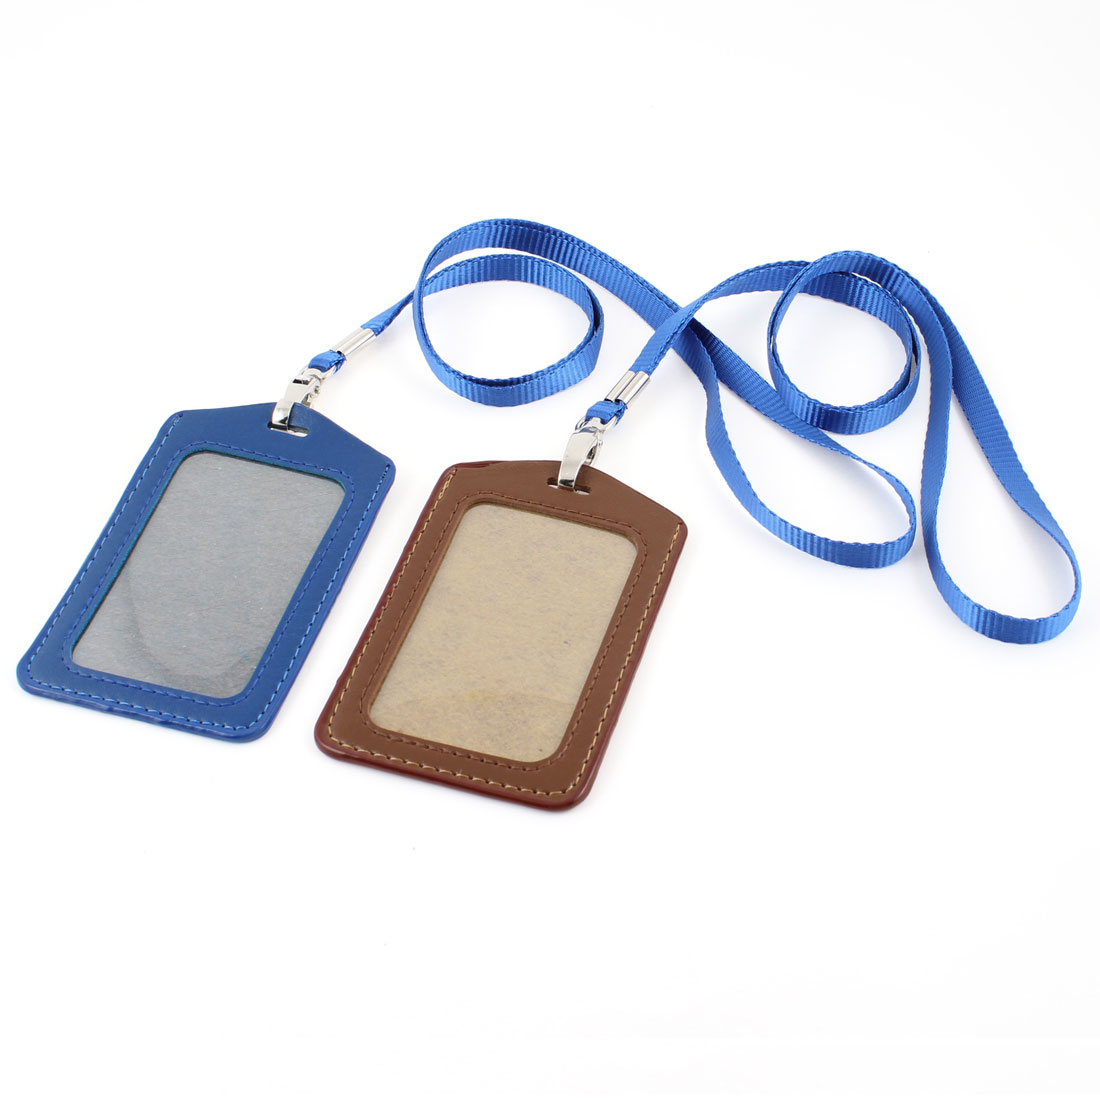 2pcs Faux Leather Wark Business ID Card Holder Royal Blue Brown w Neack Strap